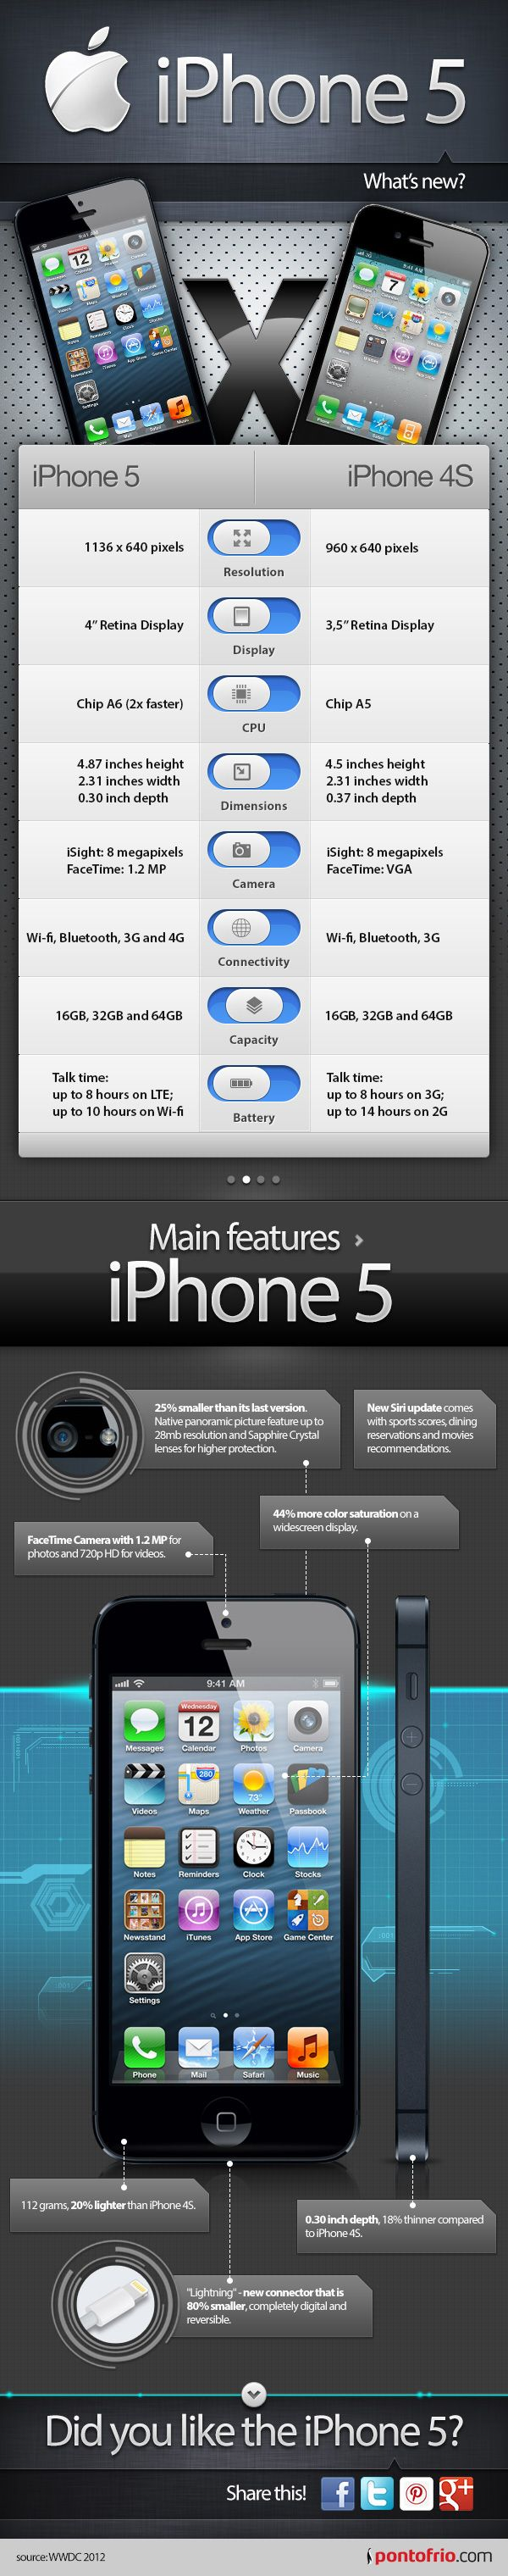 iPhone 5 - Check out the new i